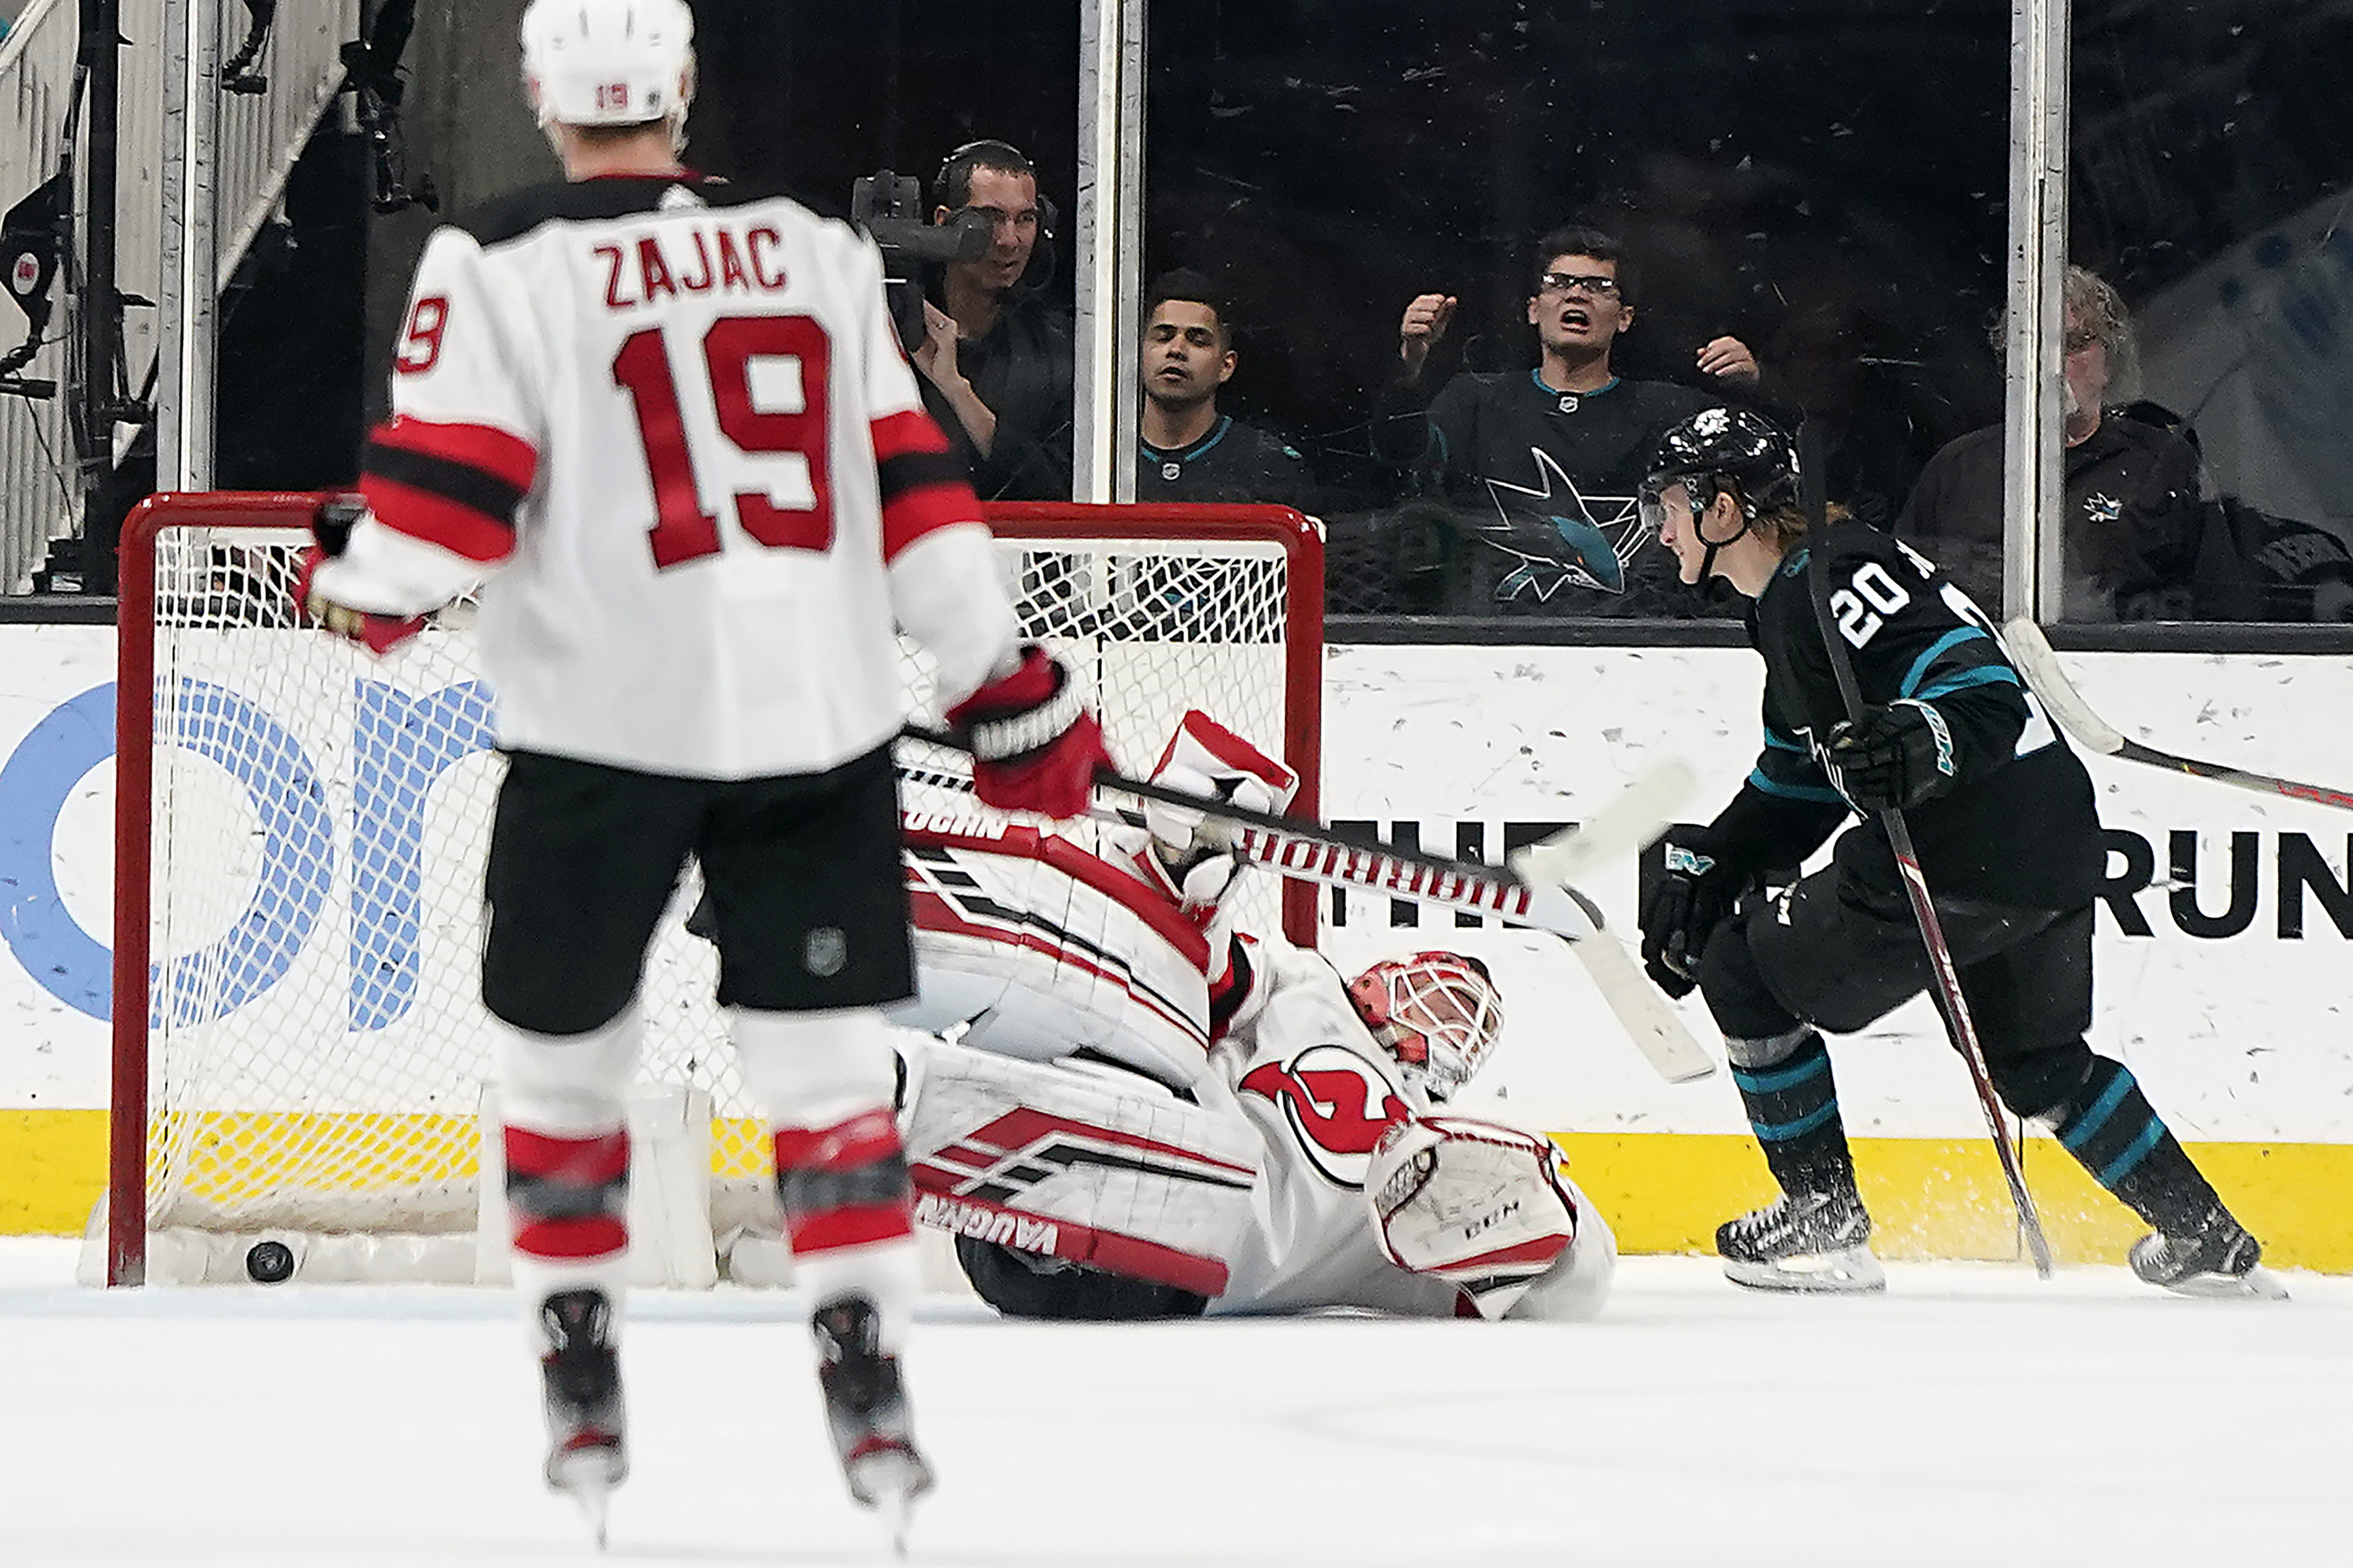 Couture scores in OT as Sharks top Devils 3-2